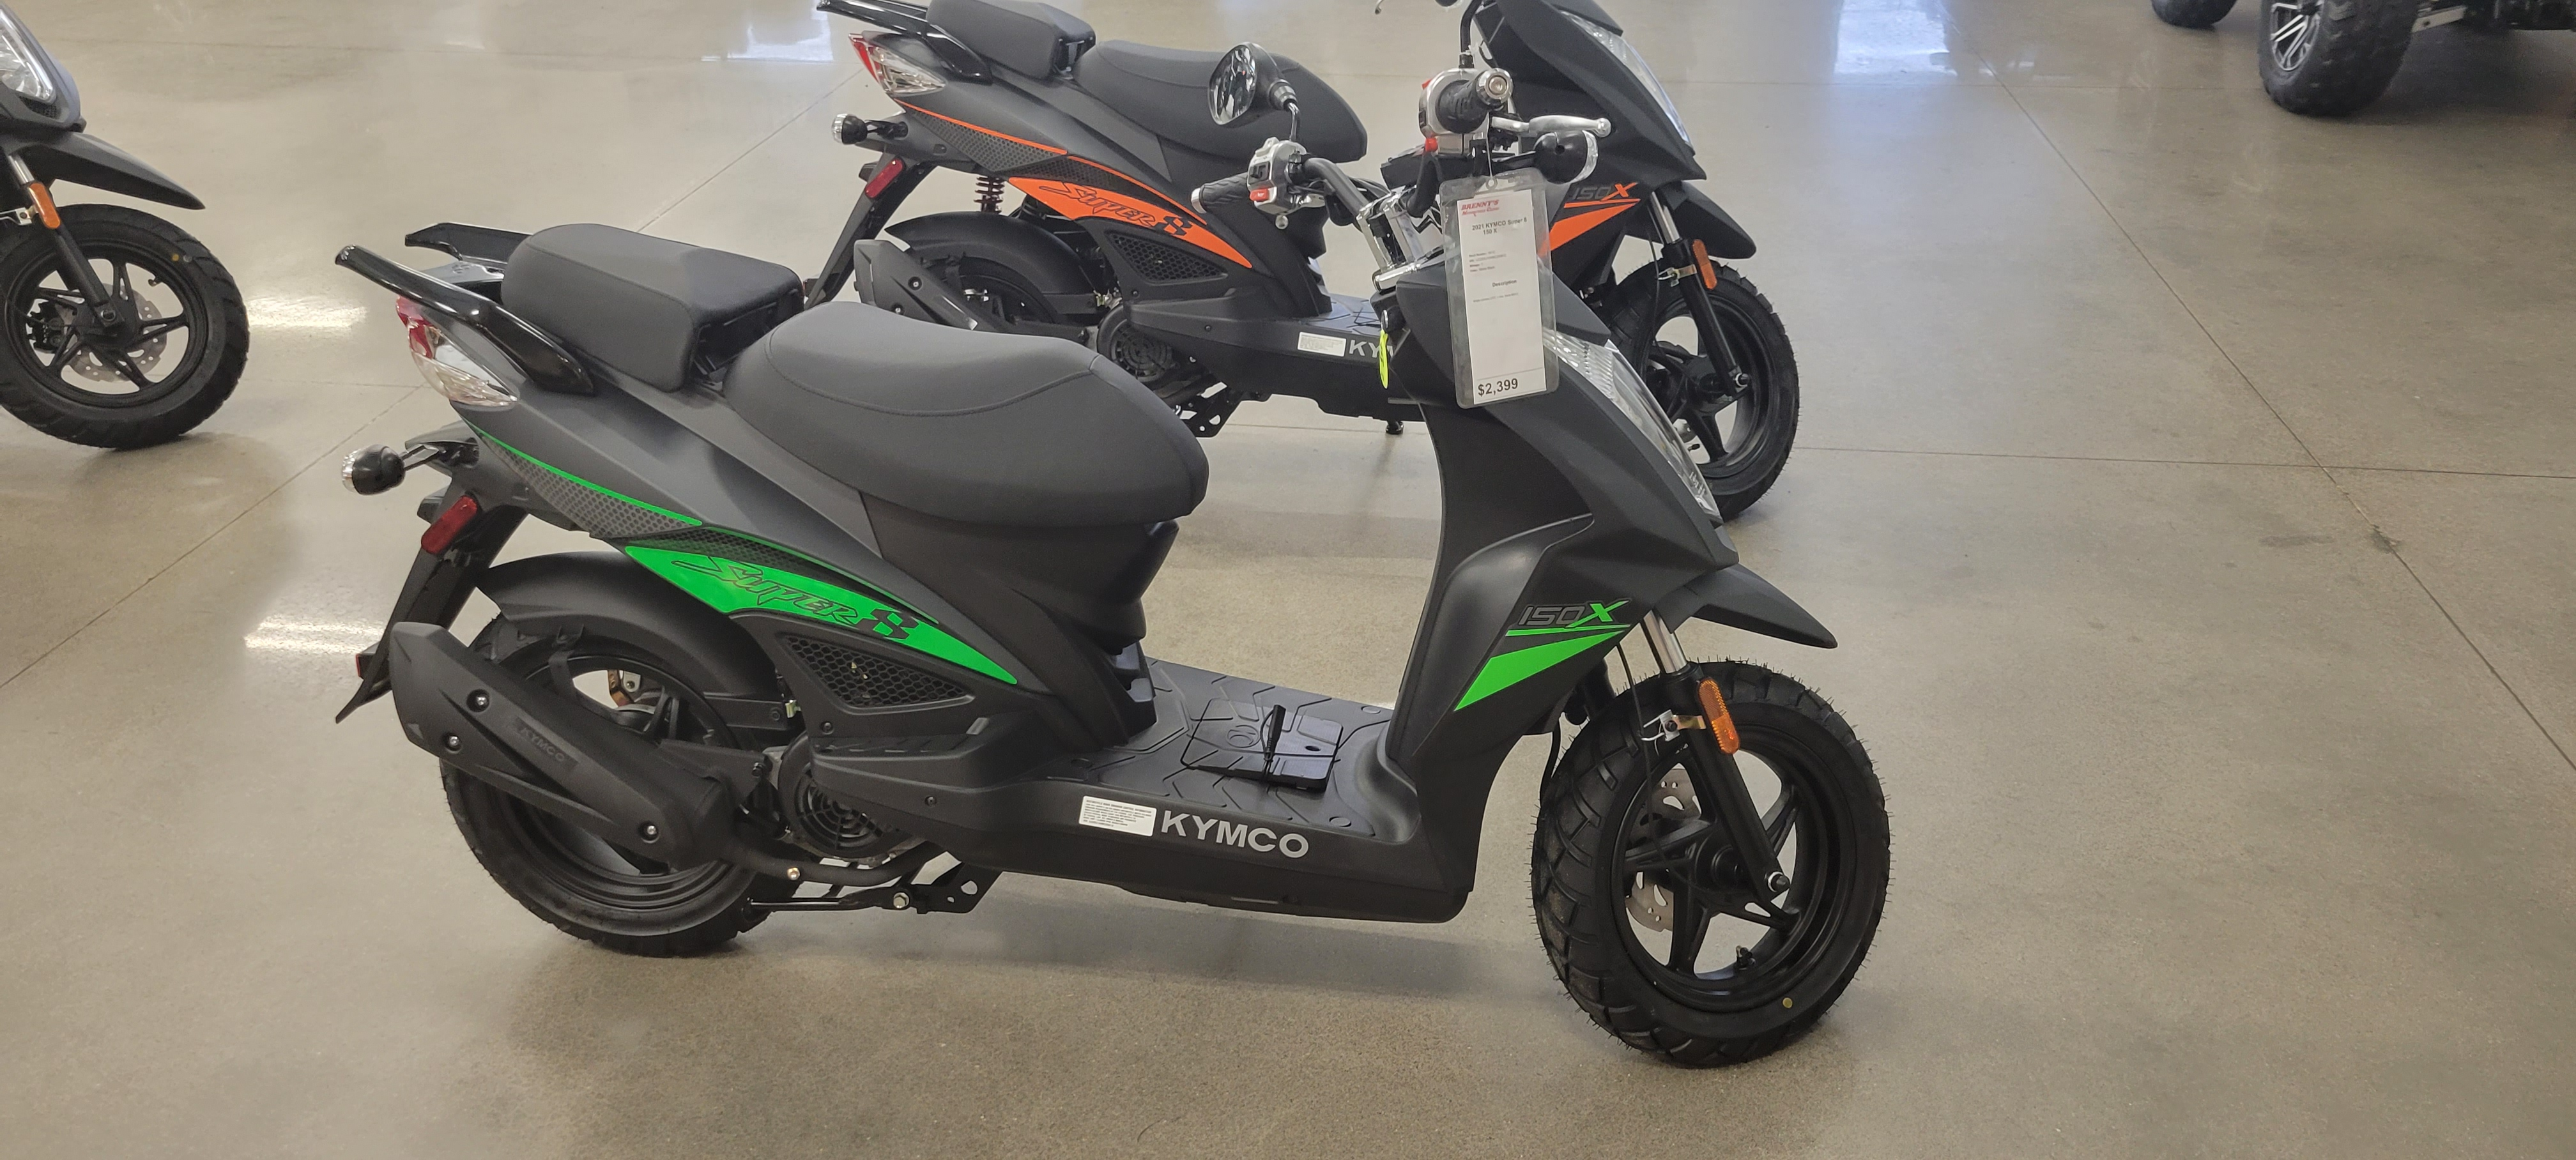 2021 KYMCO Super 8 150 X 450i LE at Brenny's Motorcycle Clinic, Bettendorf, IA 52722